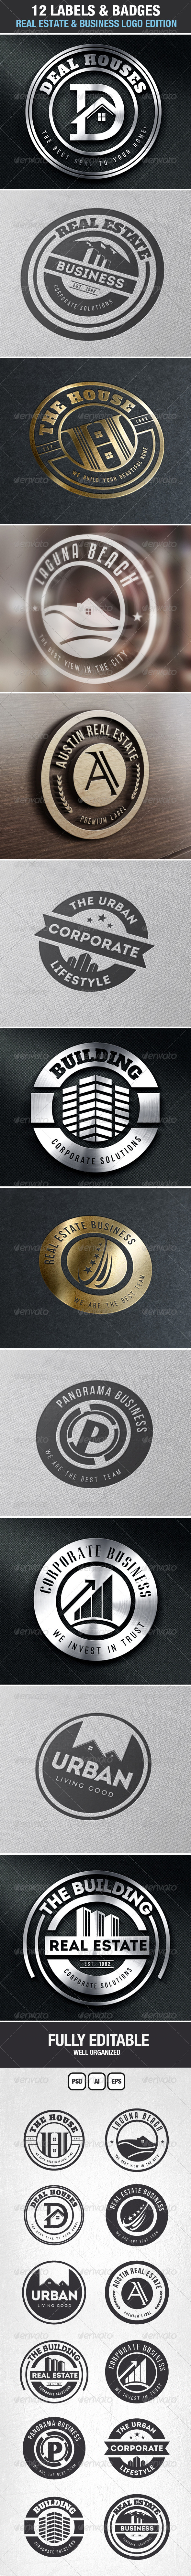 GraphicRiver 12 Real Estate & Business Labels & Badges Logos 7037651